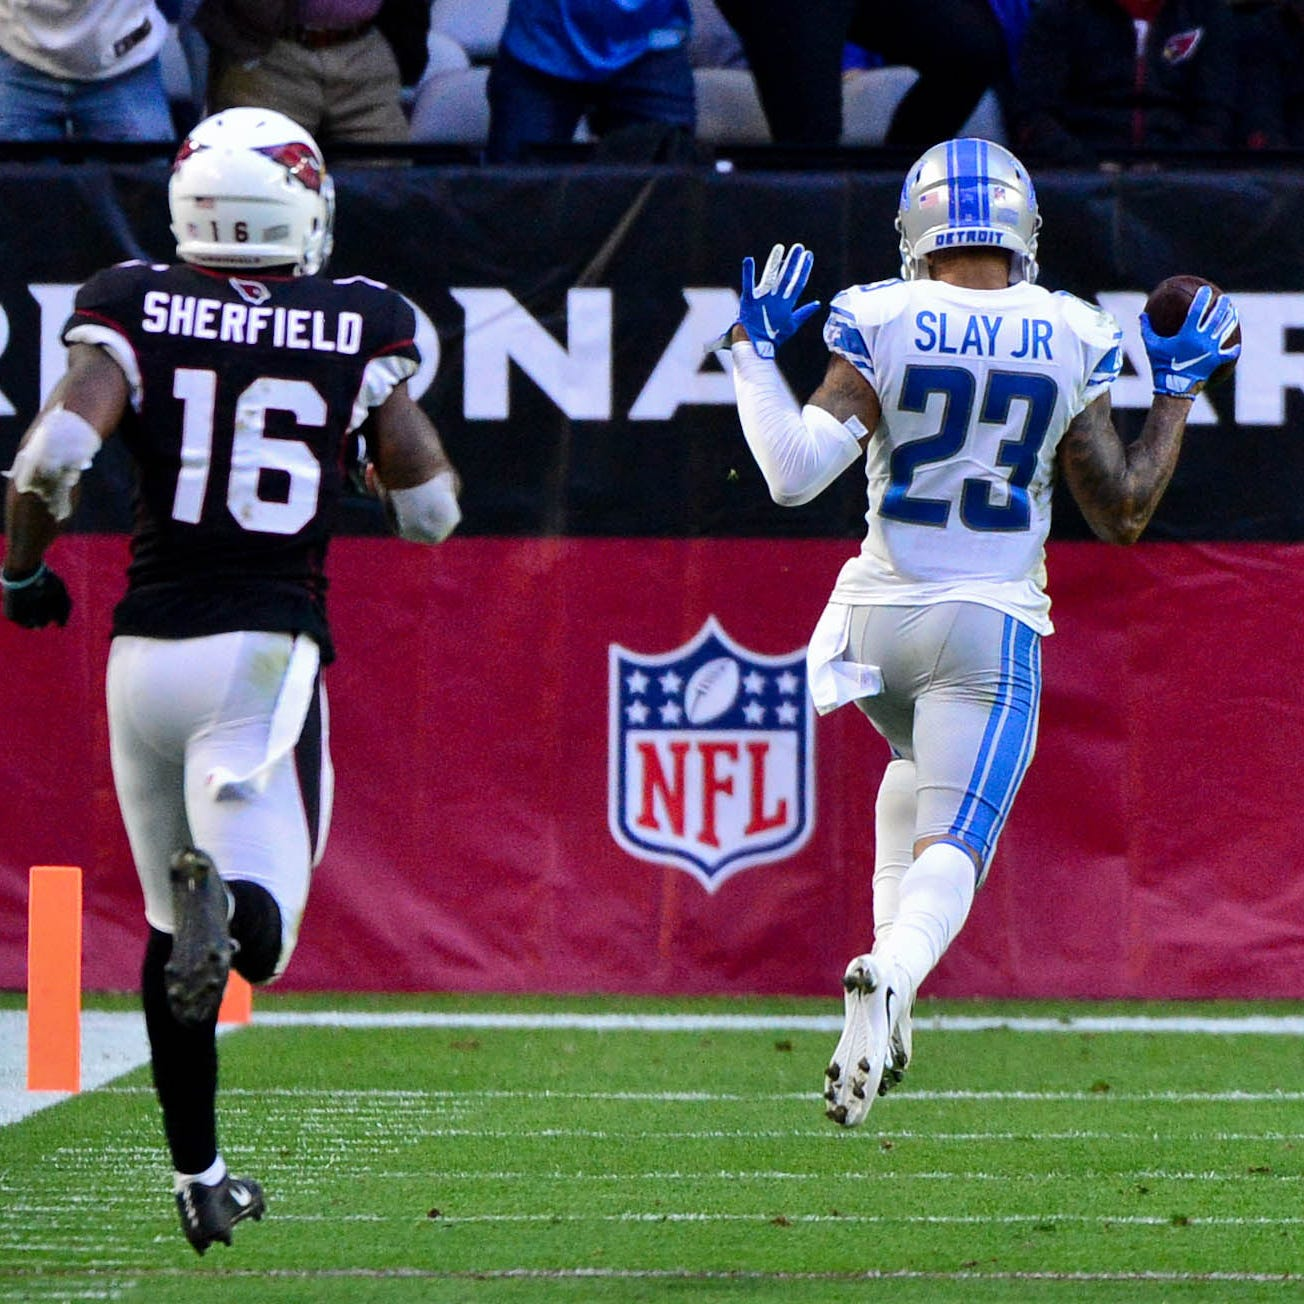 Detroit Lions cornerback Darius Slay returns an interception for a touchdown as Arizona Cardinals receiver Trent Sherfield watches during the second half at State Farm Stadium, Dec. 9, 2018.